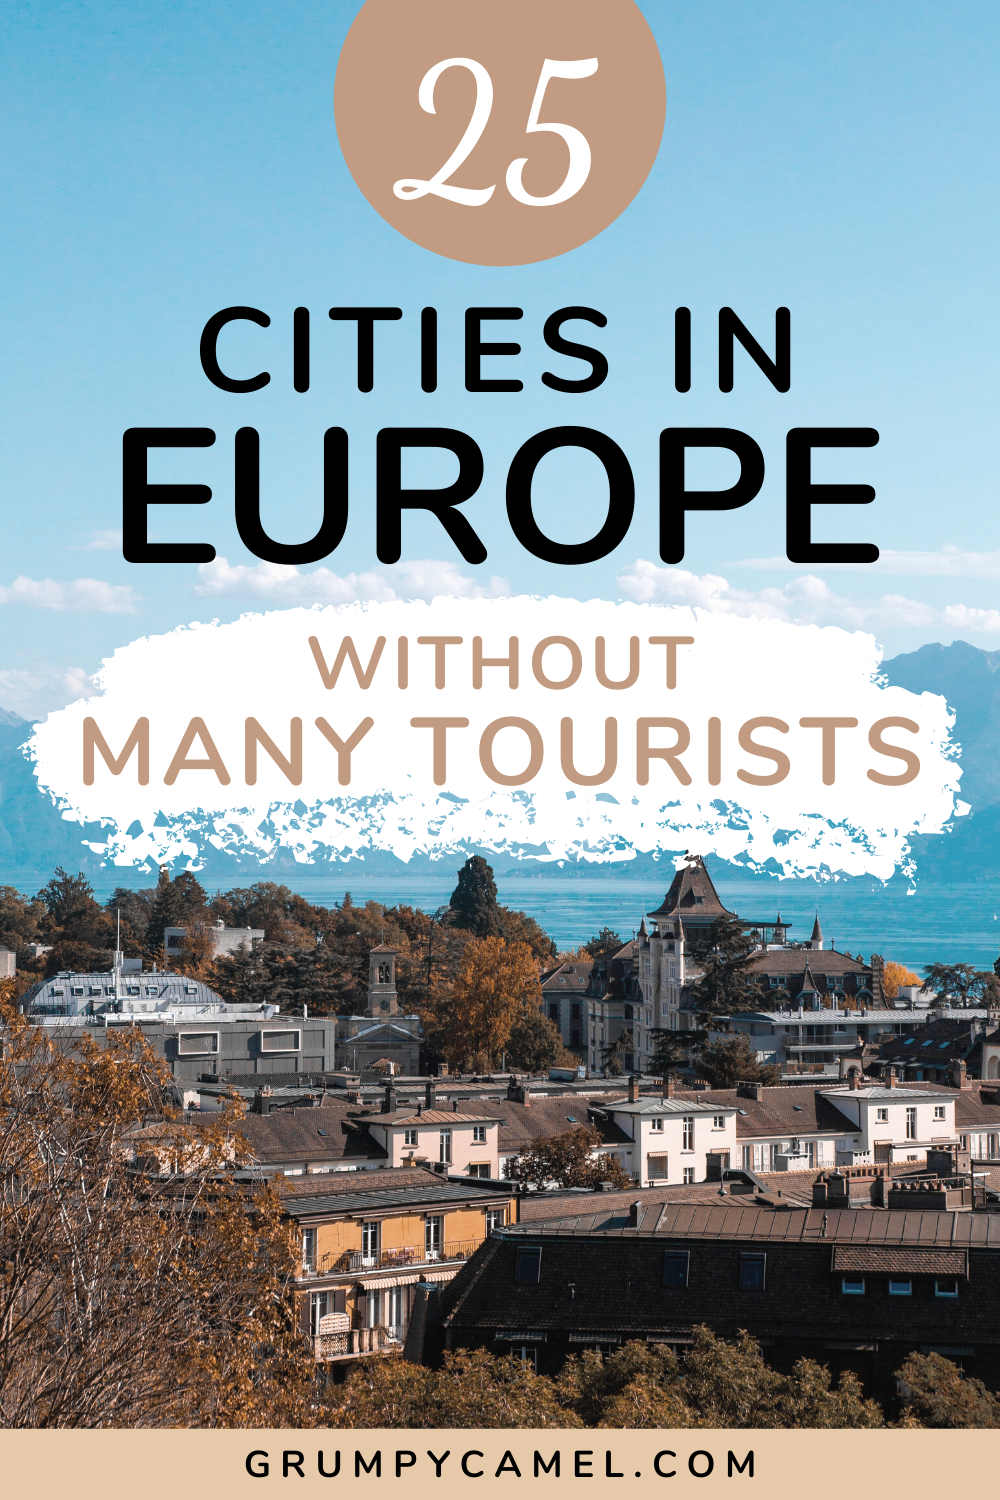 Cities in Europe without many tourists